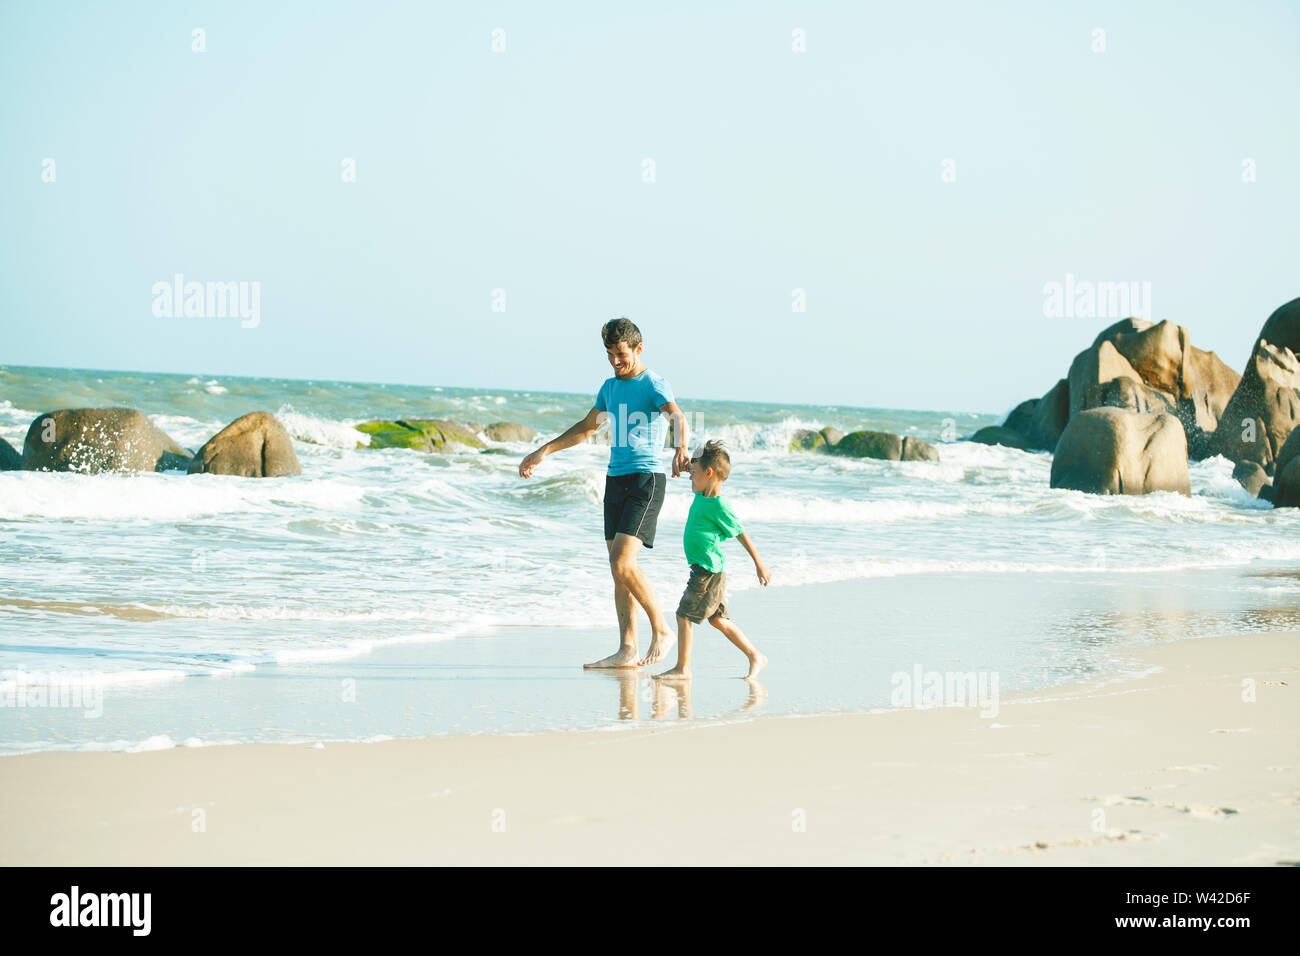 happy family on beach playing, father with son walking sea coast, rocks behind smiling taking vacation closeup - Stock Image